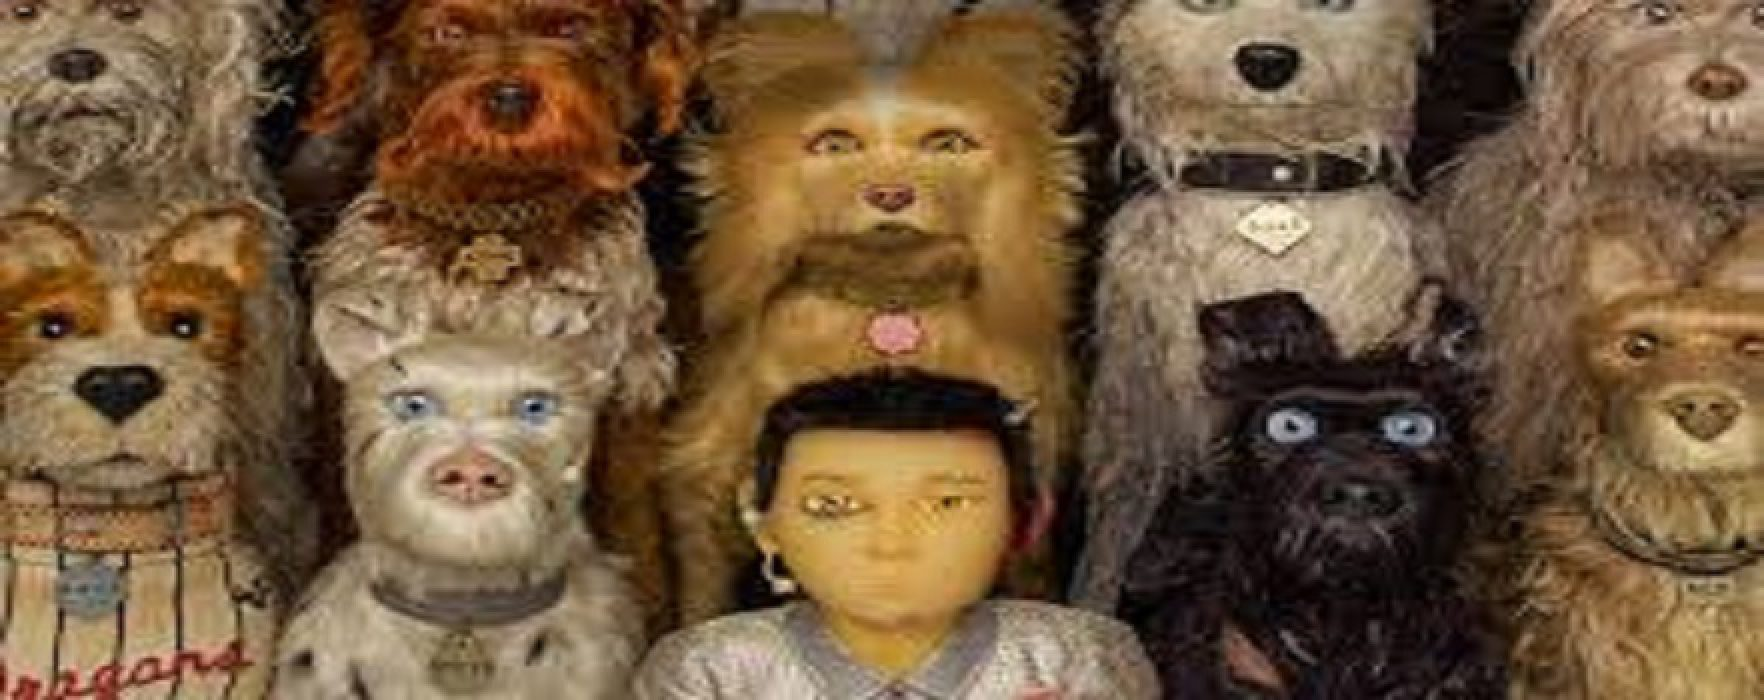 Isle of Dogs: Offbeat, In More Ways Than One